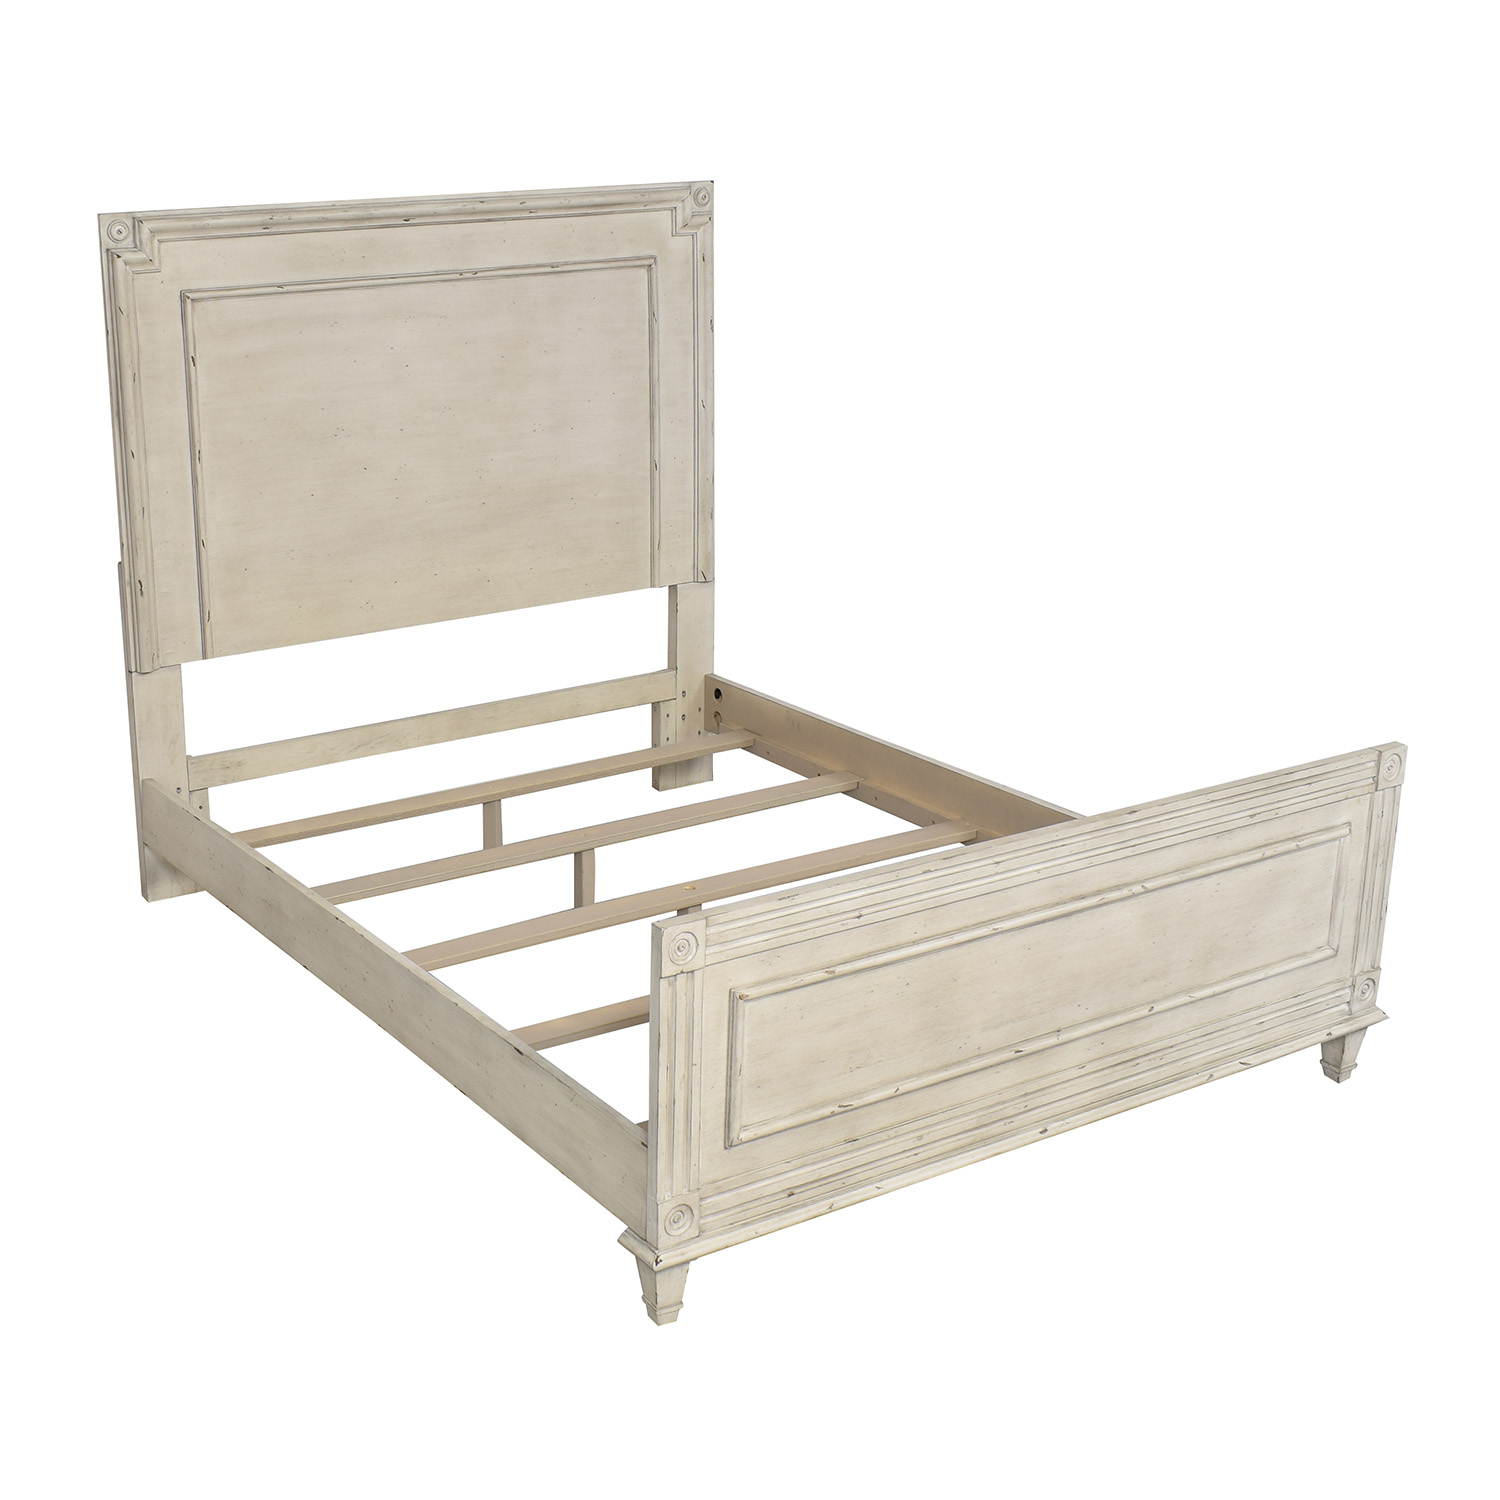 American Drew American Drew Southbury Queen Panel Bed dimensions